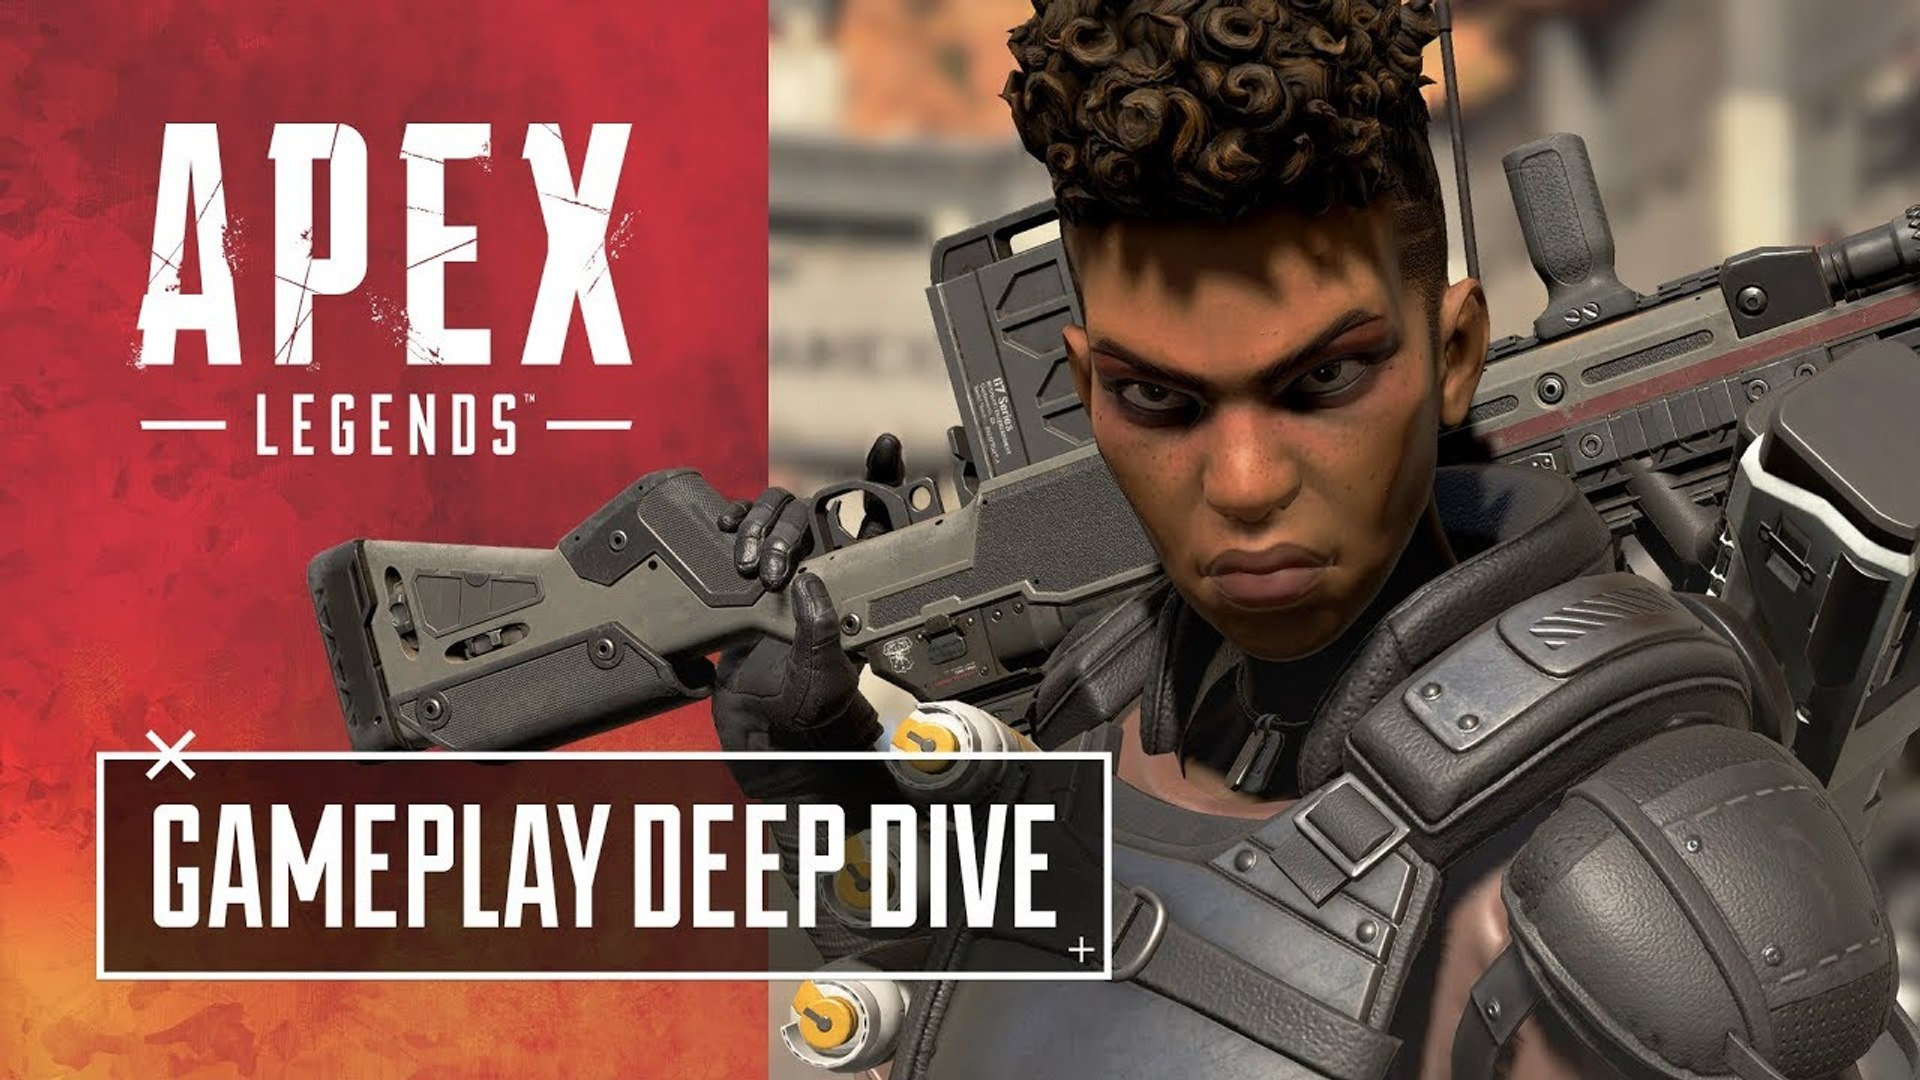 APEX LEGENDS Gameplay Deep Dive Trailer (2019)